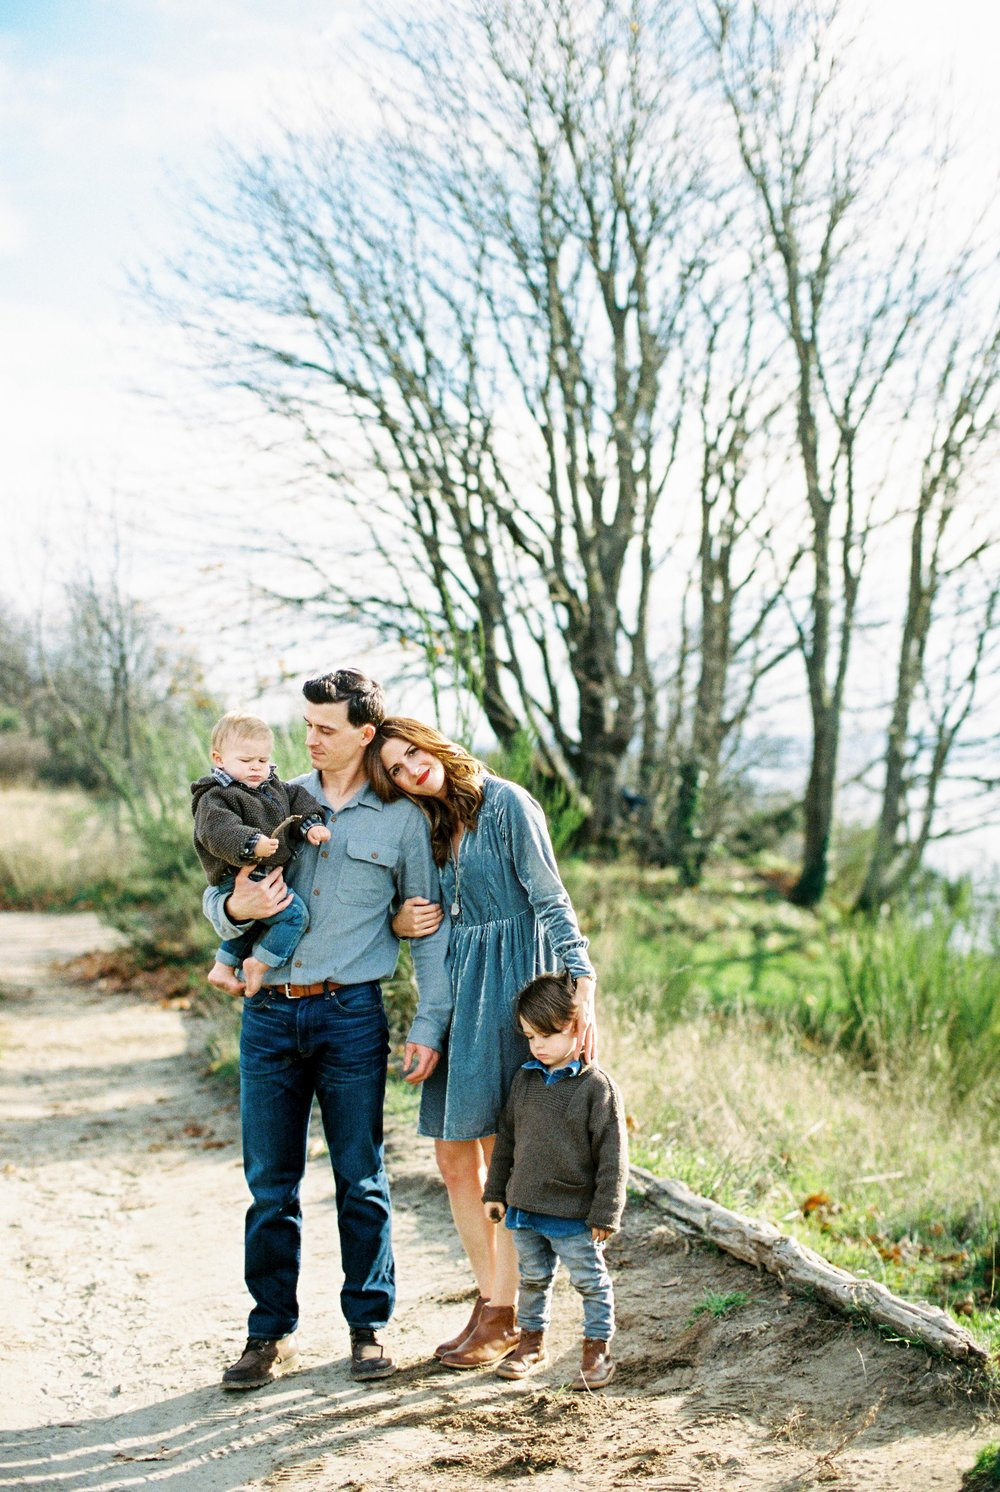 seattle family photographer photo discovery park children child kids kid mom dad brother double exposure film kodak portra 400 35mm pudget sound most popular top best rated photographer rachael kruse photography